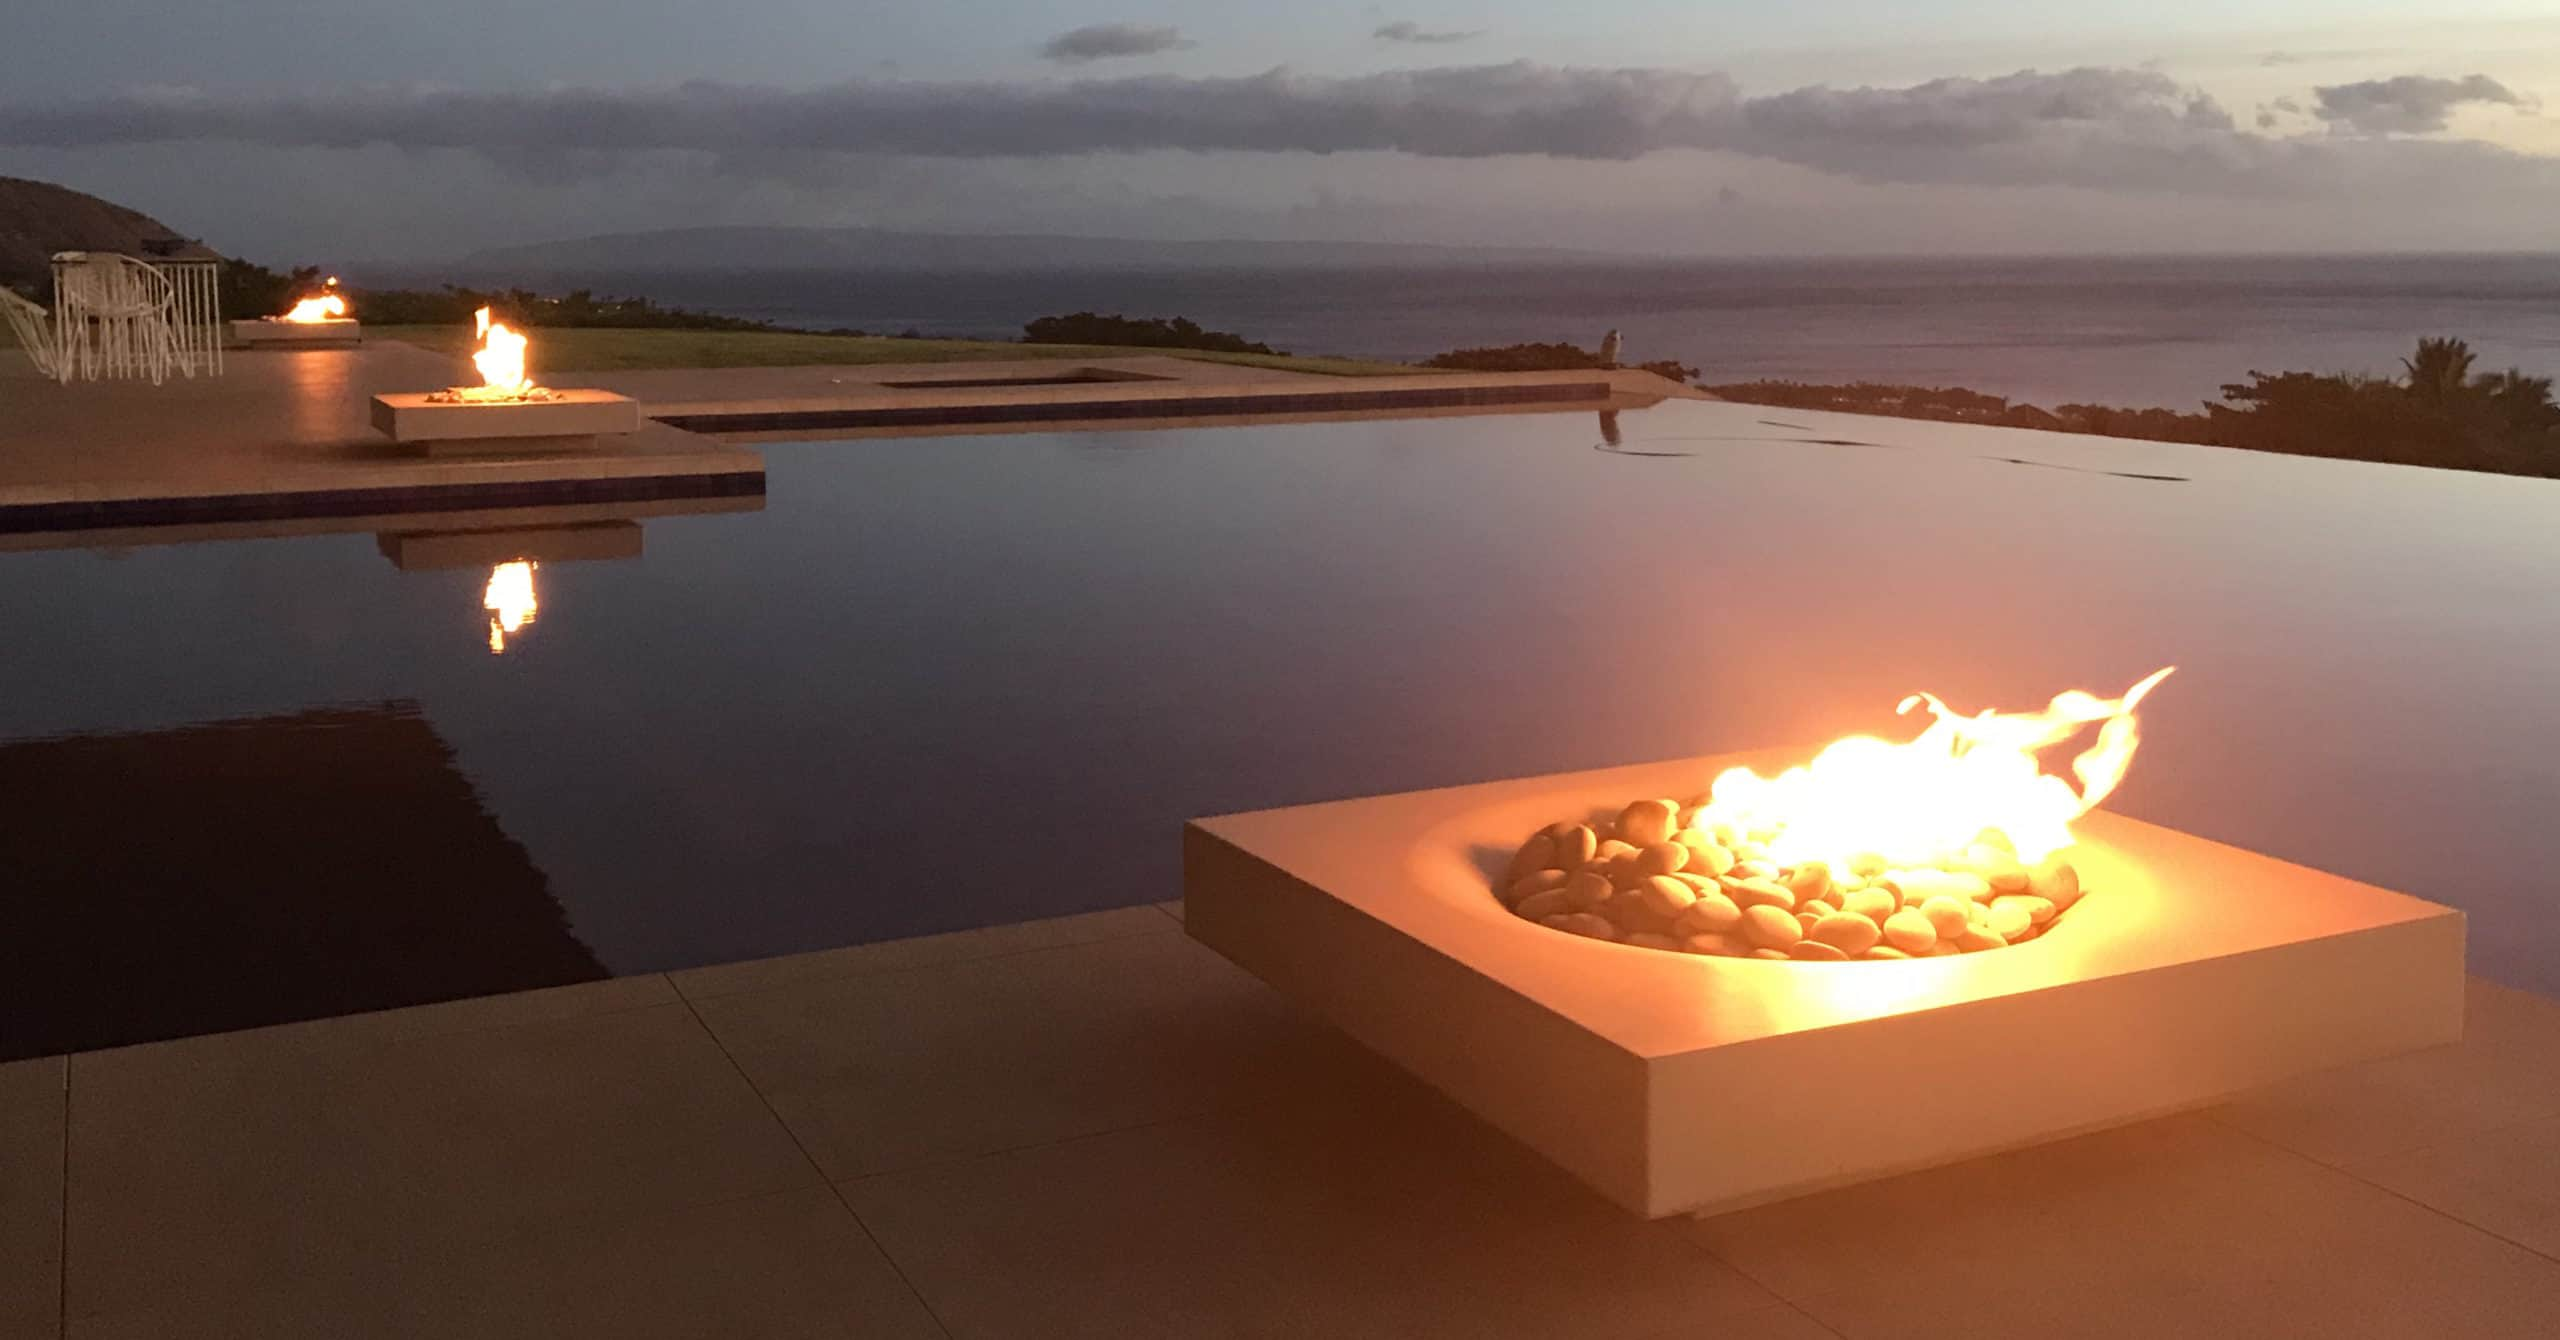 Halo Low 36 Fire Pit - Waikiki Hawaii